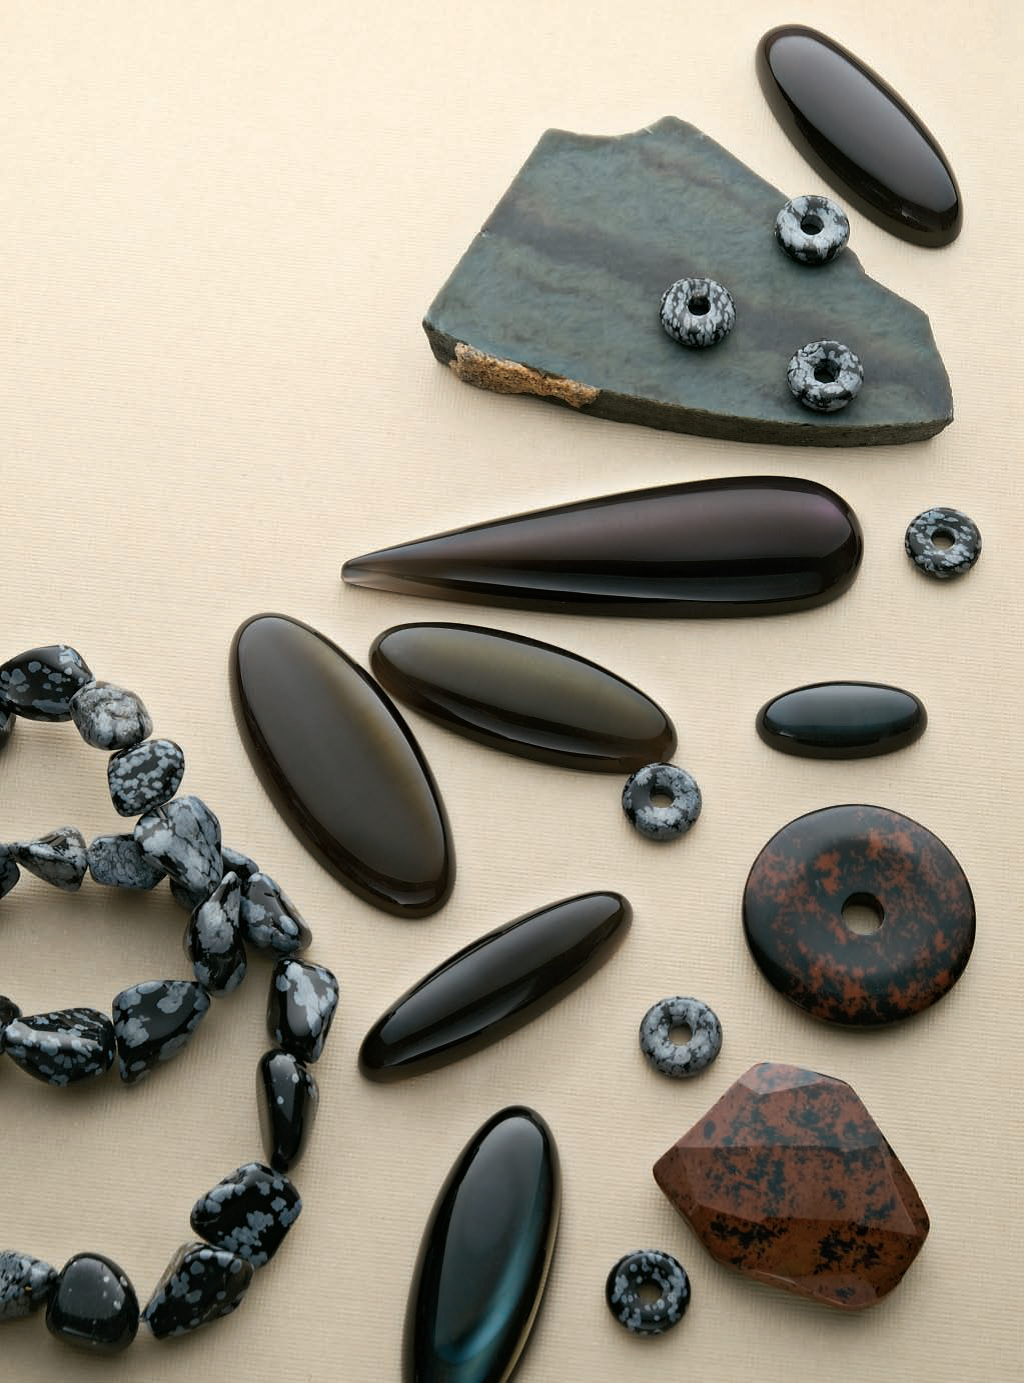 Obsidian is so much more than black. Here, the selection includes snowflake, sheen, rainbow, and mahogany obsidian. Stones cut by Bob Rush. As seen in the July 2010 issue of Lapidary Journal Jewelry Artist. Photo by Jim Lawson.